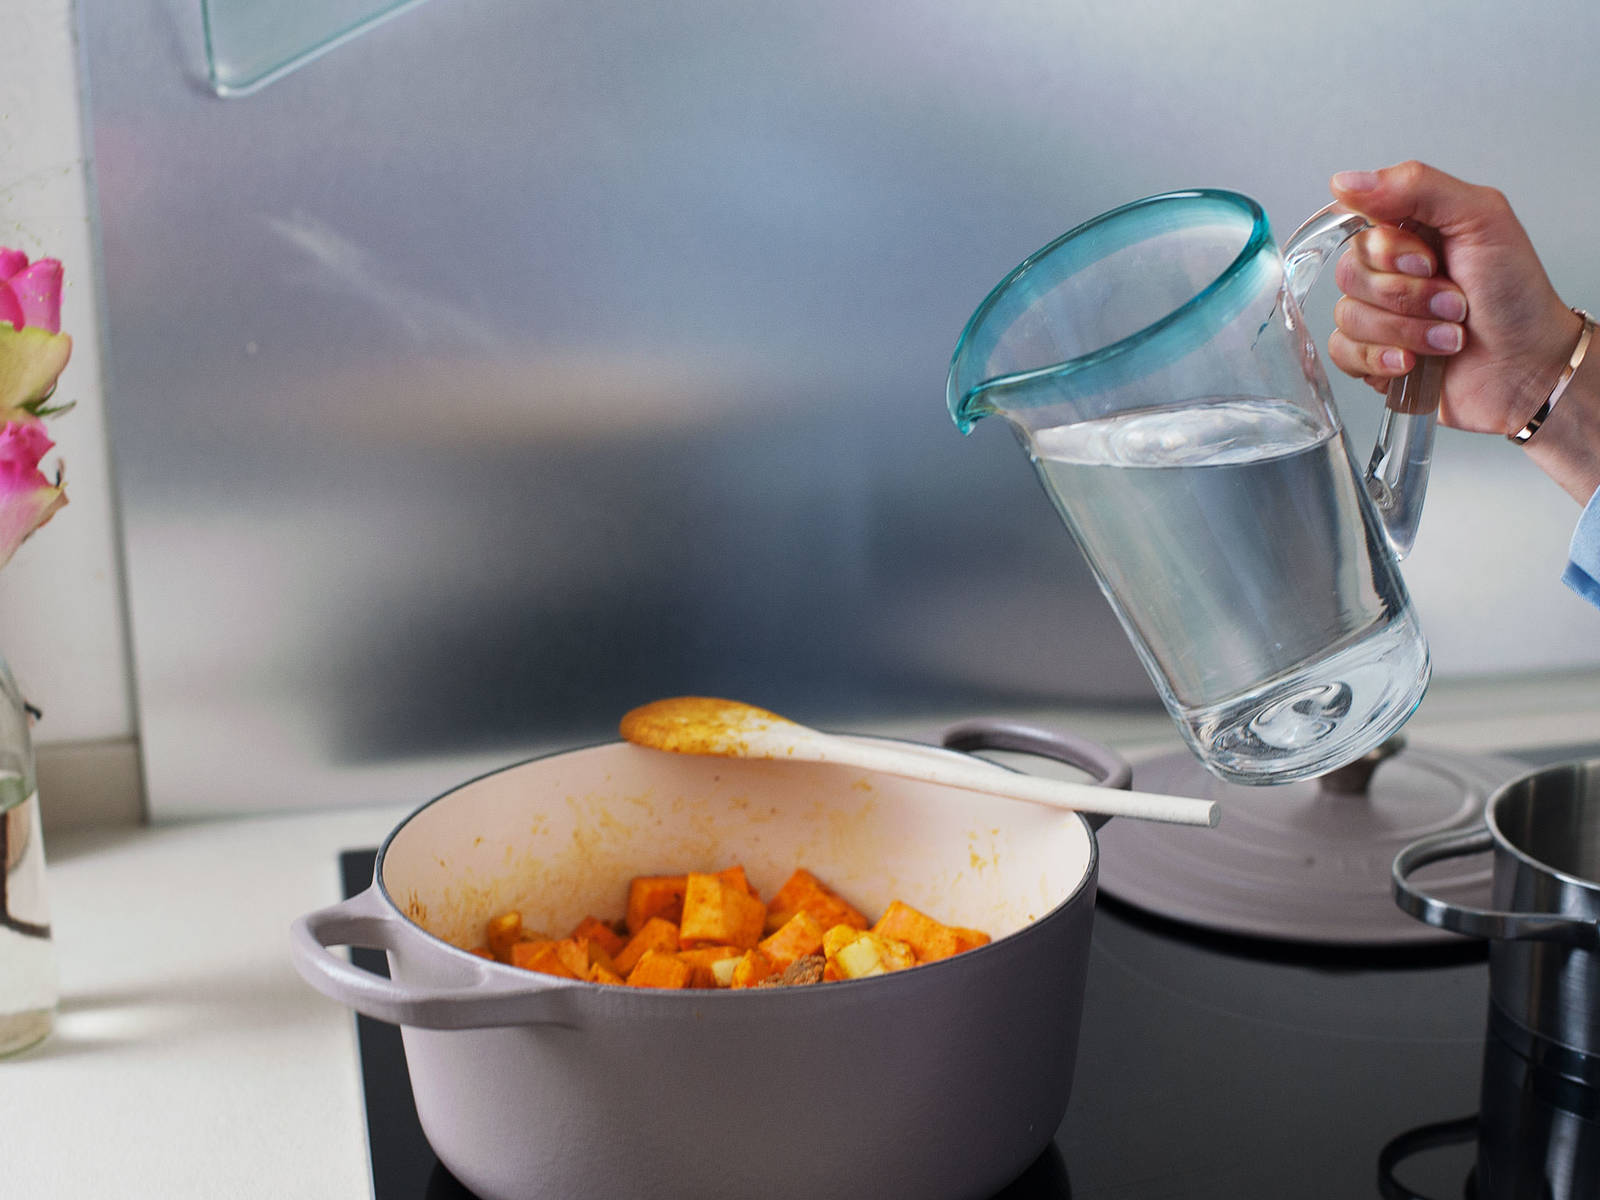 Stir in water, vegetable stock, and tomatoes and bring to a boil. Reduce heat and let simmer for approx. 15 – 20 min. until sweet potatoes are softened, but still firm.